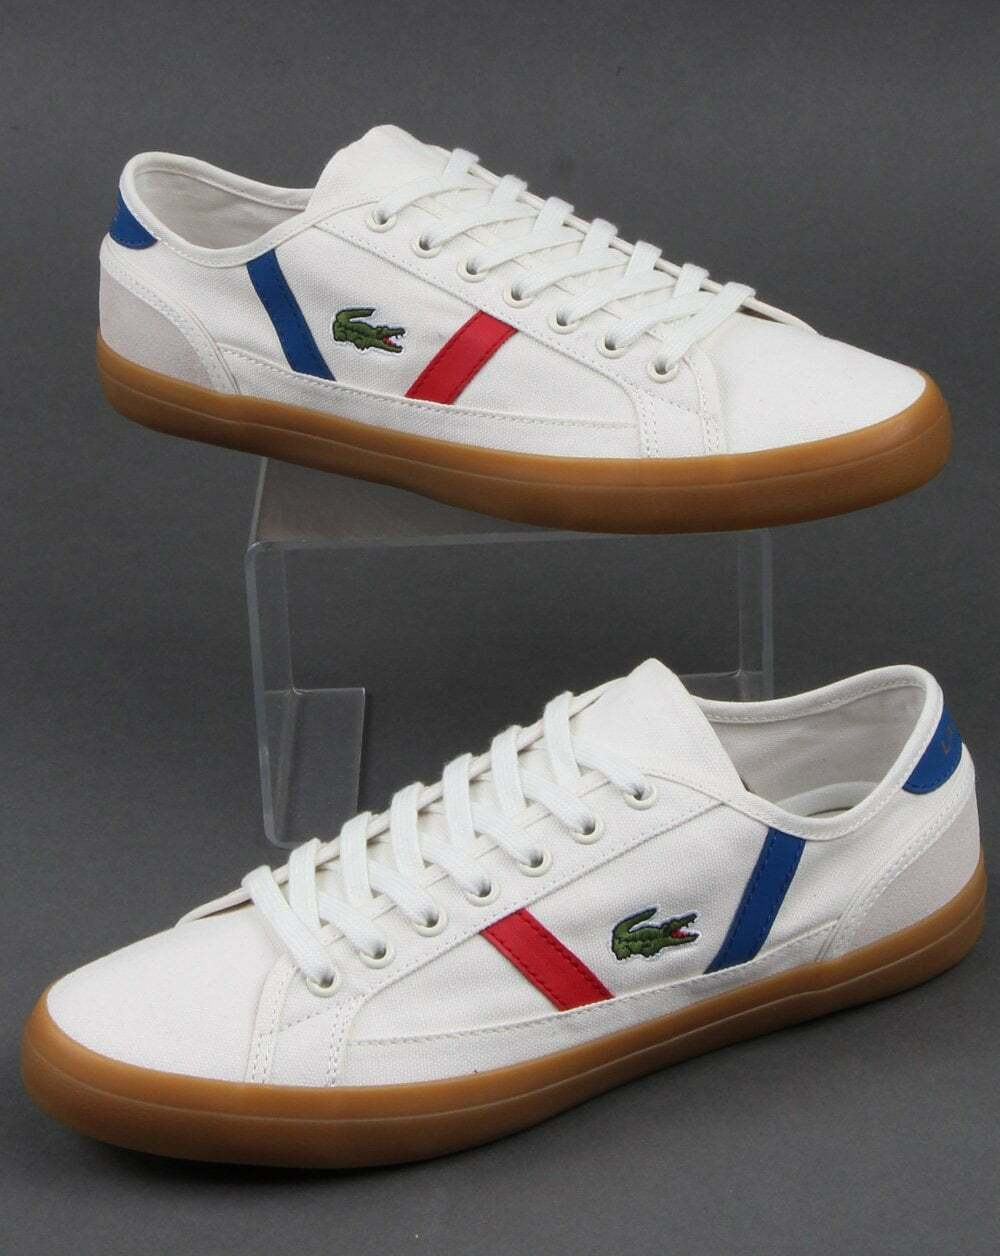 Lacoste Sideline Trainers in Off blanco, rojo & azul with gum sole - canvas pump